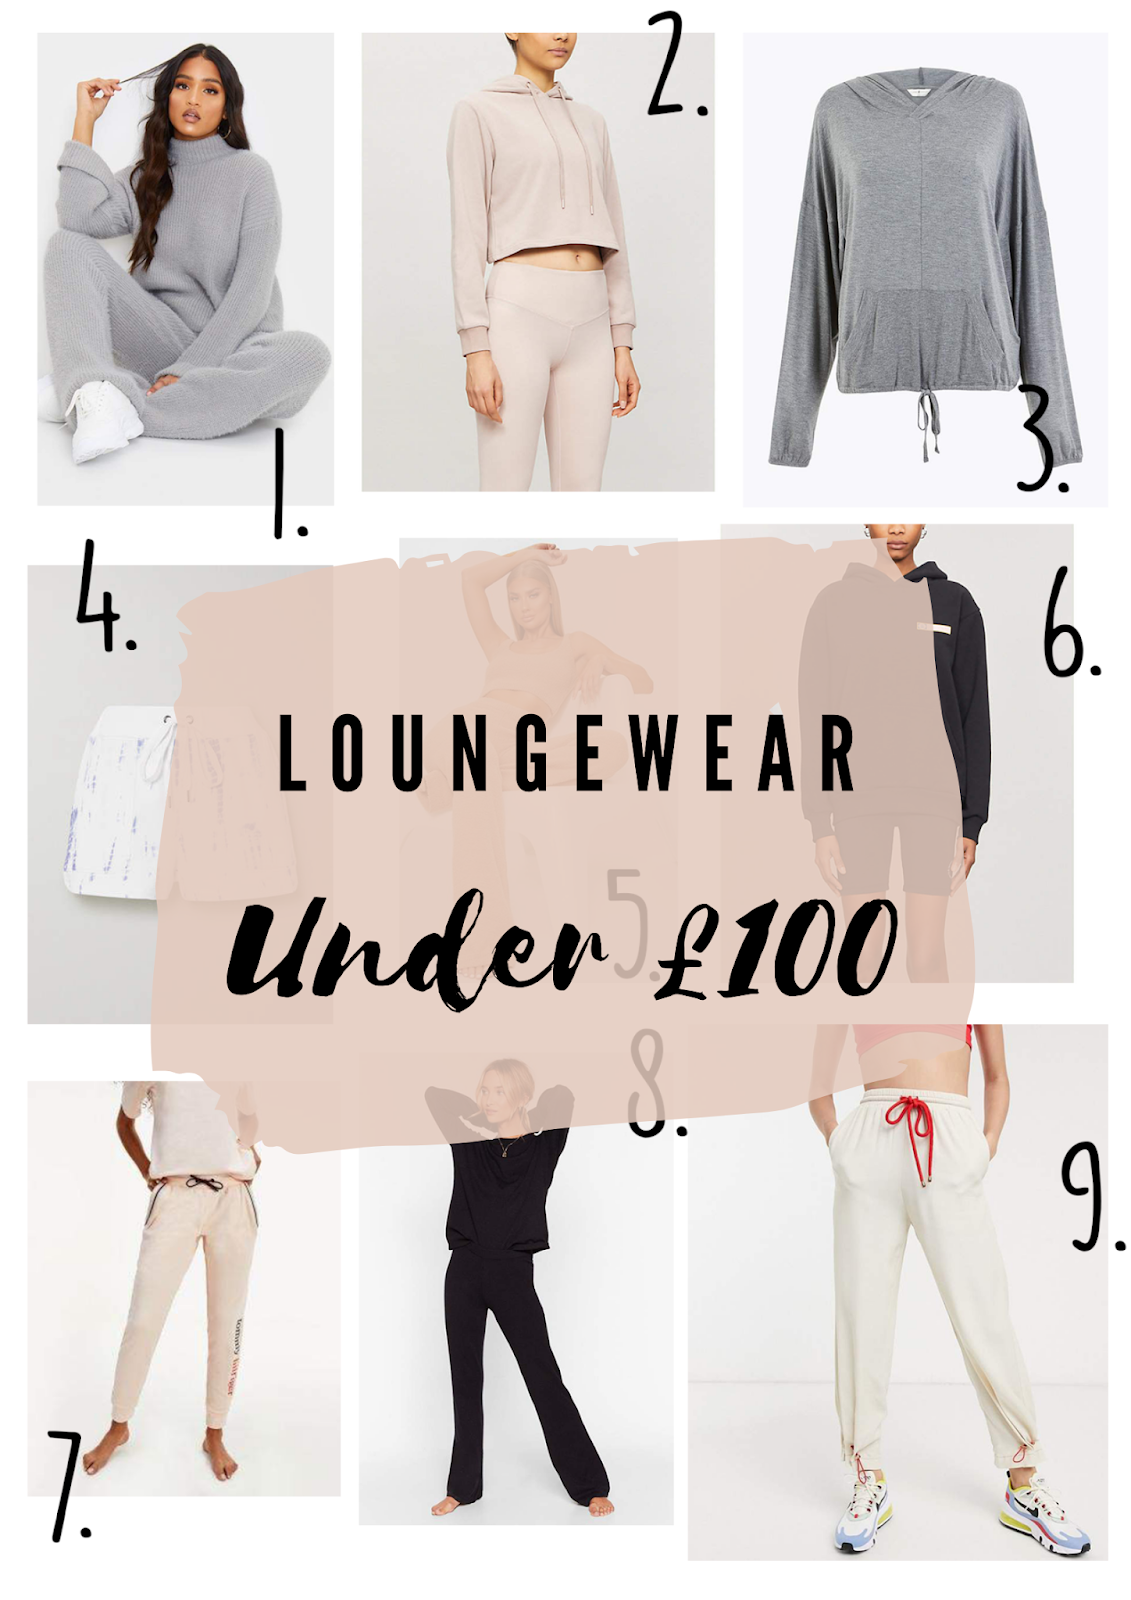 cheap loungewear, beige loungewear, loungewear uk,lounge wear sets, loungewear asos,  loungewear prettylittlething, loungewear nasty gal, loungewear missguided, working from home clothes, comfy clothes, comfy clothes to work from home,